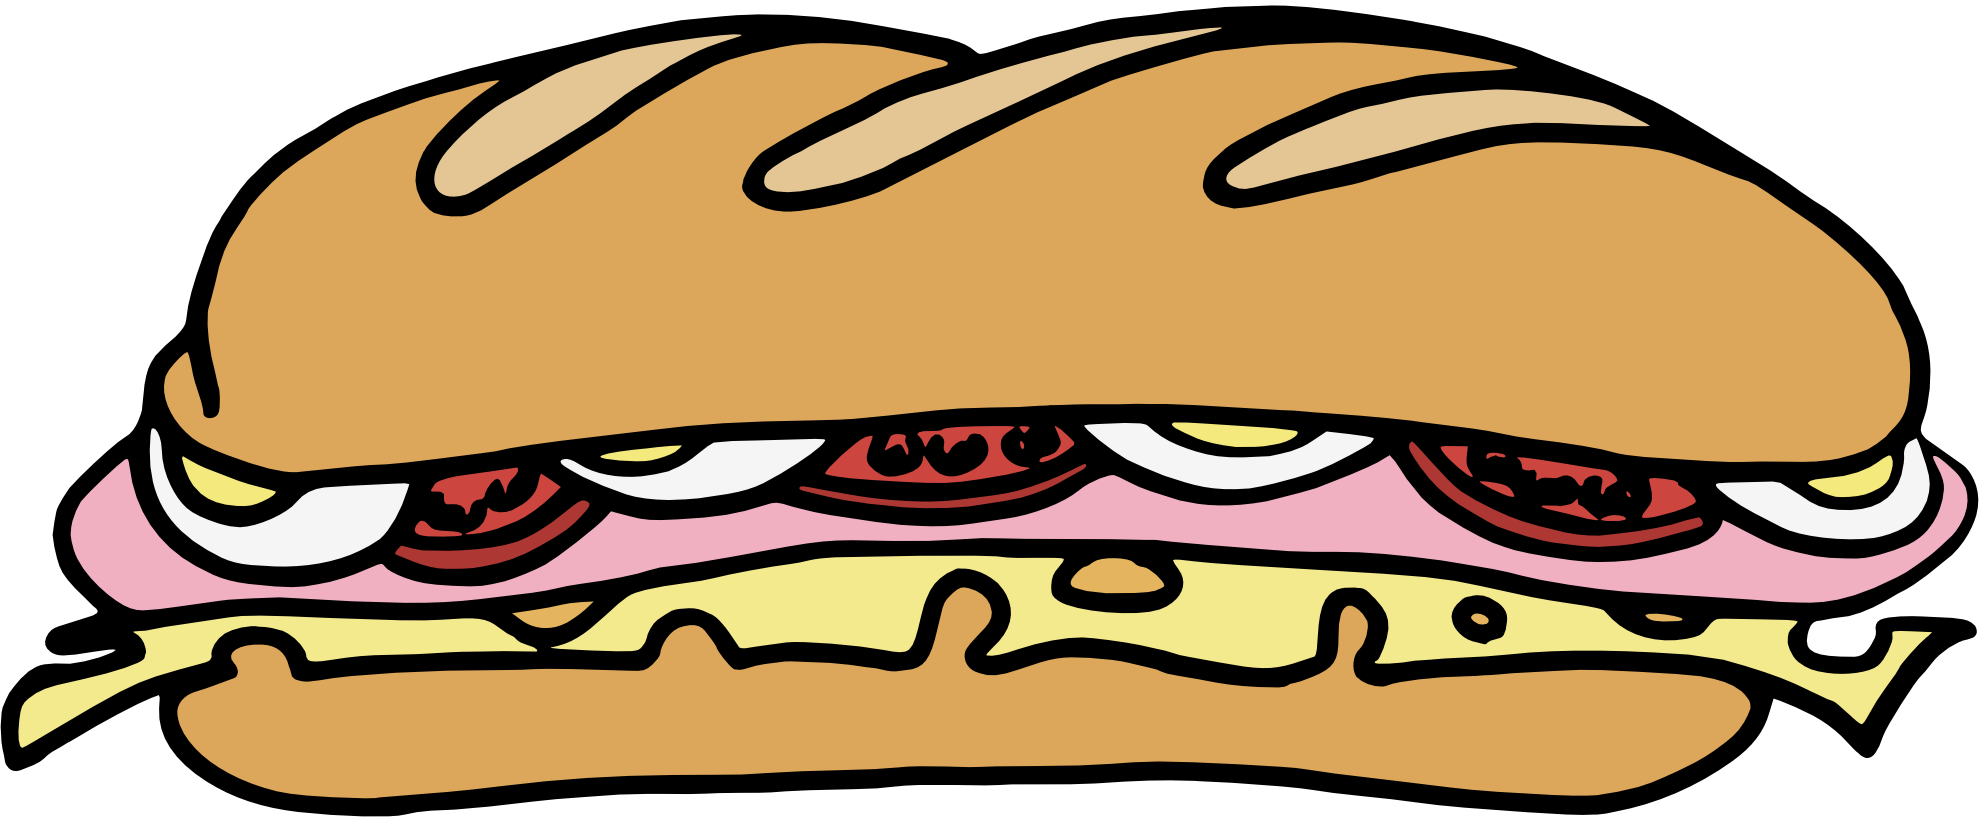 Vector sandwich tuna. Images for cheese clipart